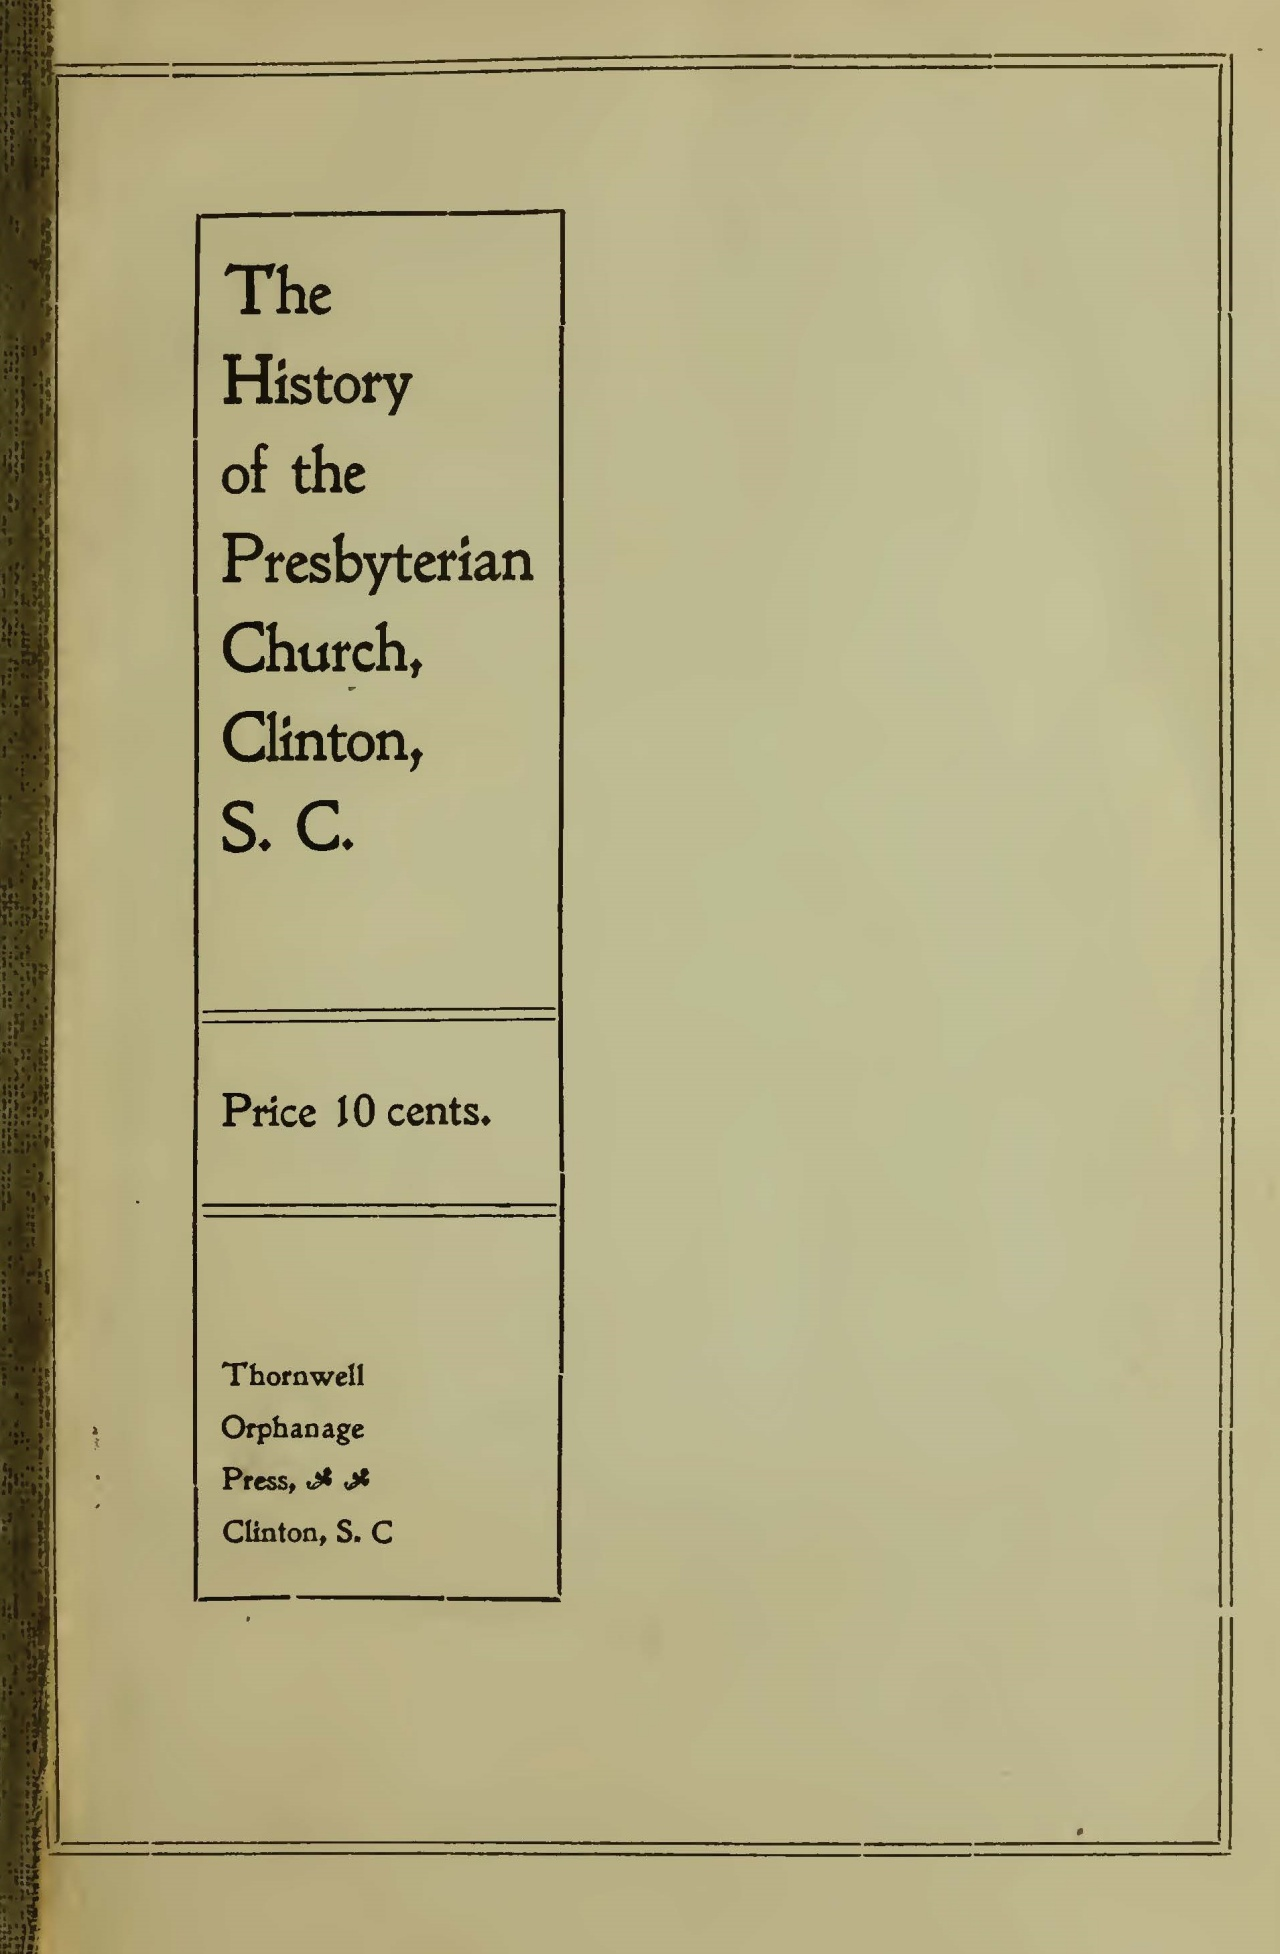 Jacobs, William Plumer, The History of the Presbyterian Church, Clinton, S.C. Title Page.jpg